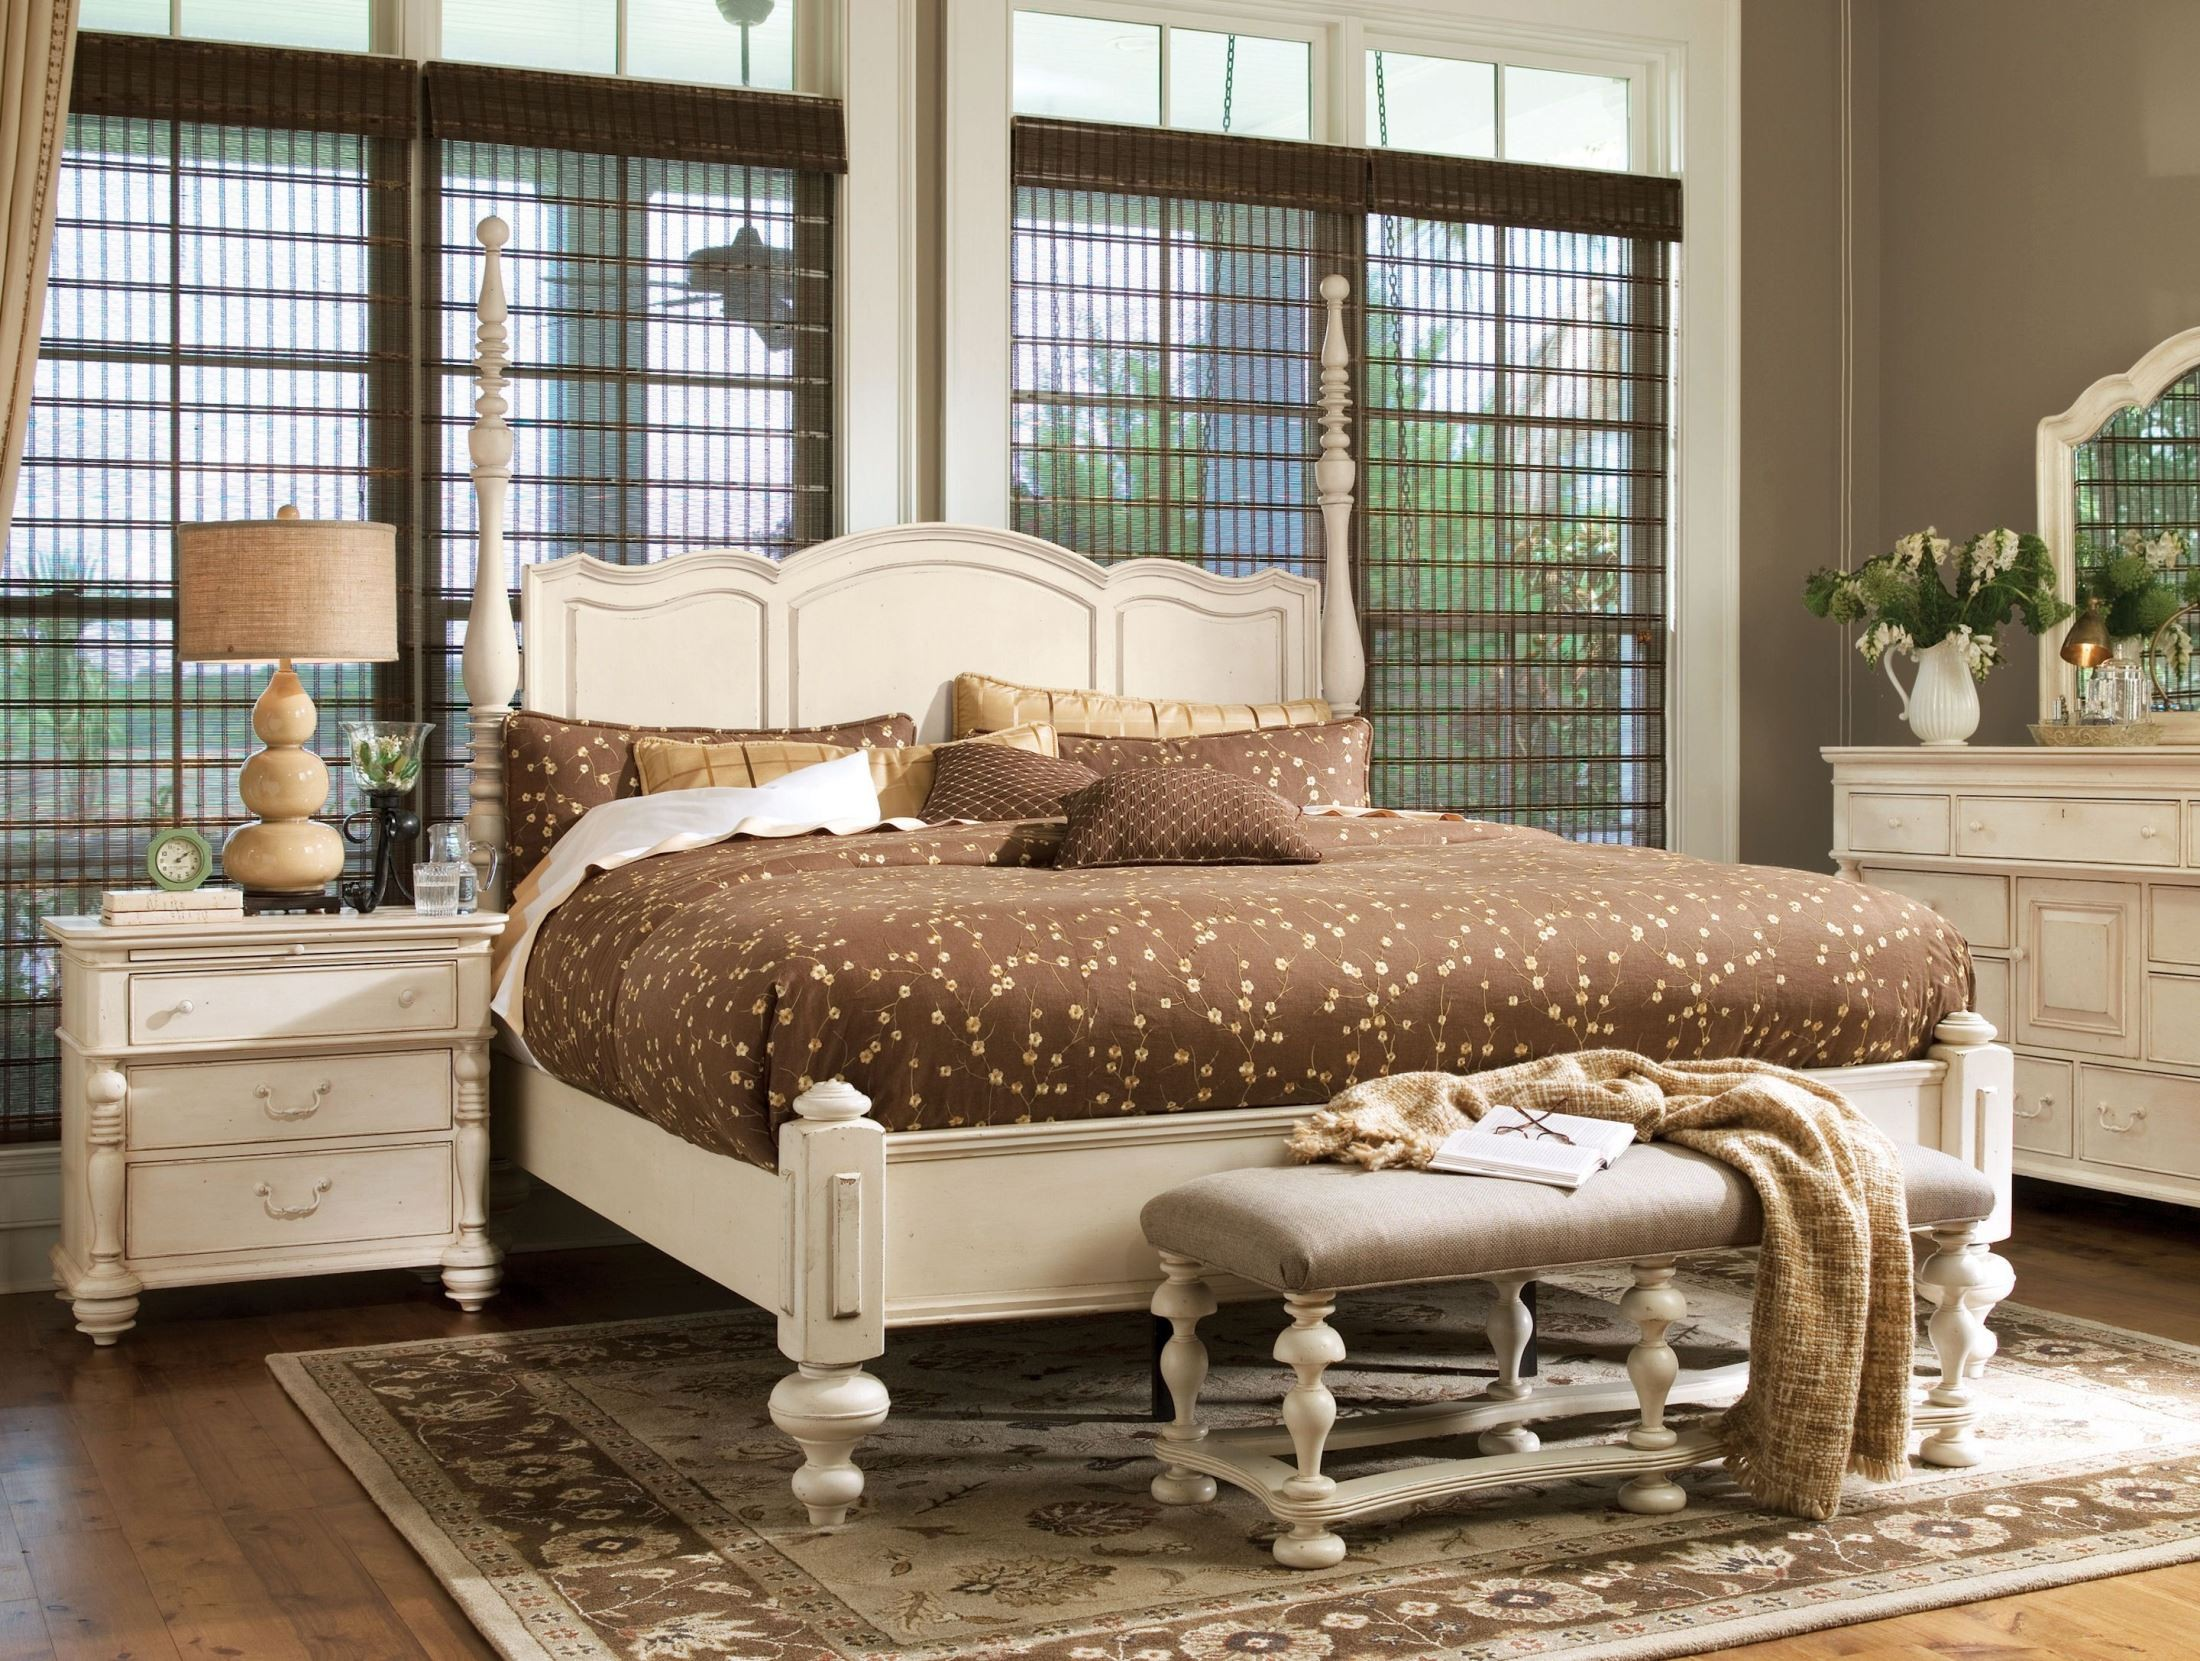 Paula deen home linen savannah poster bedroom set from - Paula deen bedroom furniture collection ...